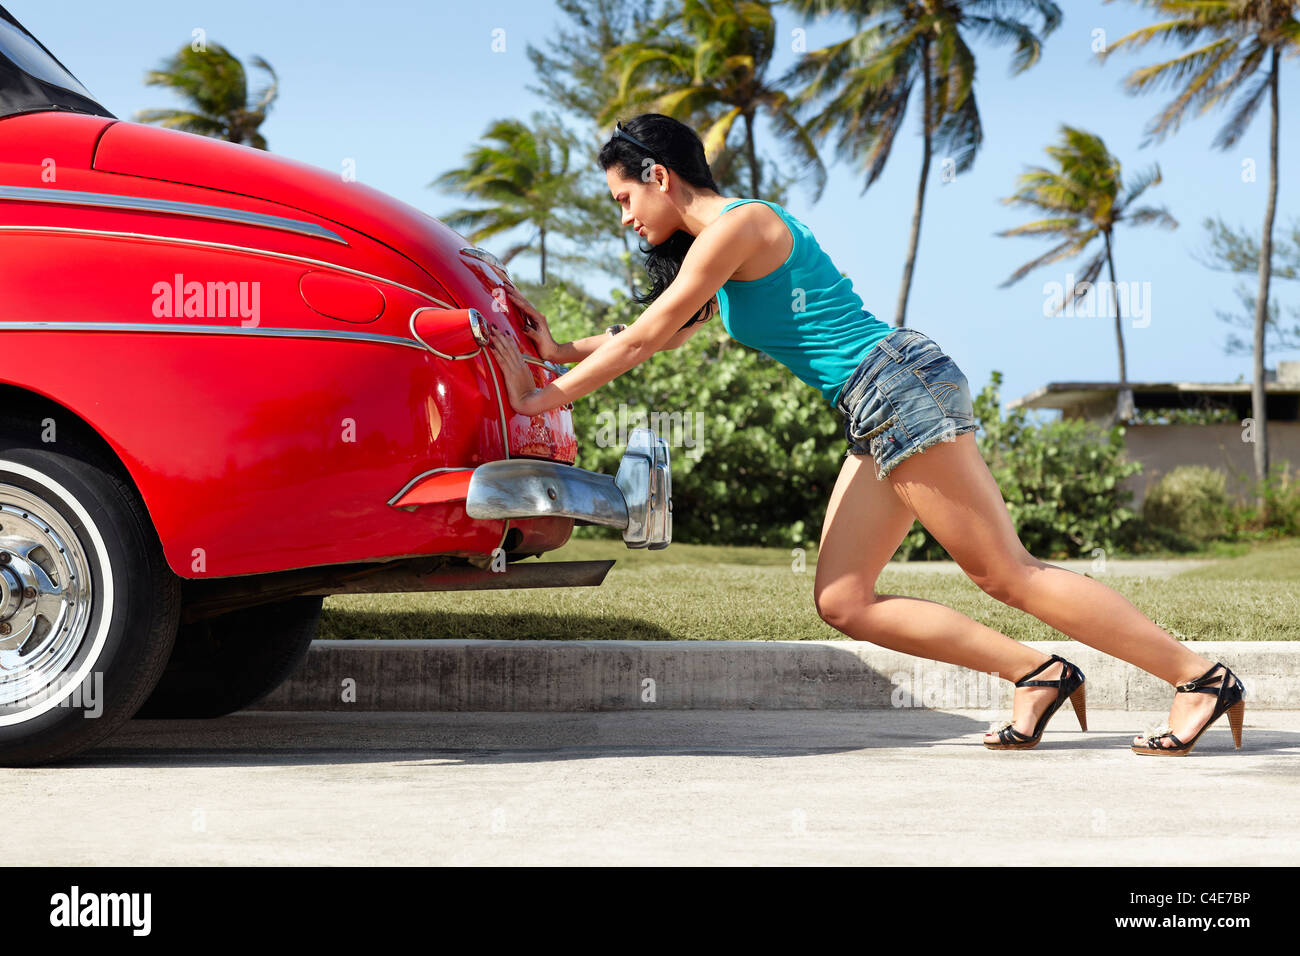 young hispanic woman pushing broken down red convertible vintage car. Horizontal shape, full length, side view - Stock Image